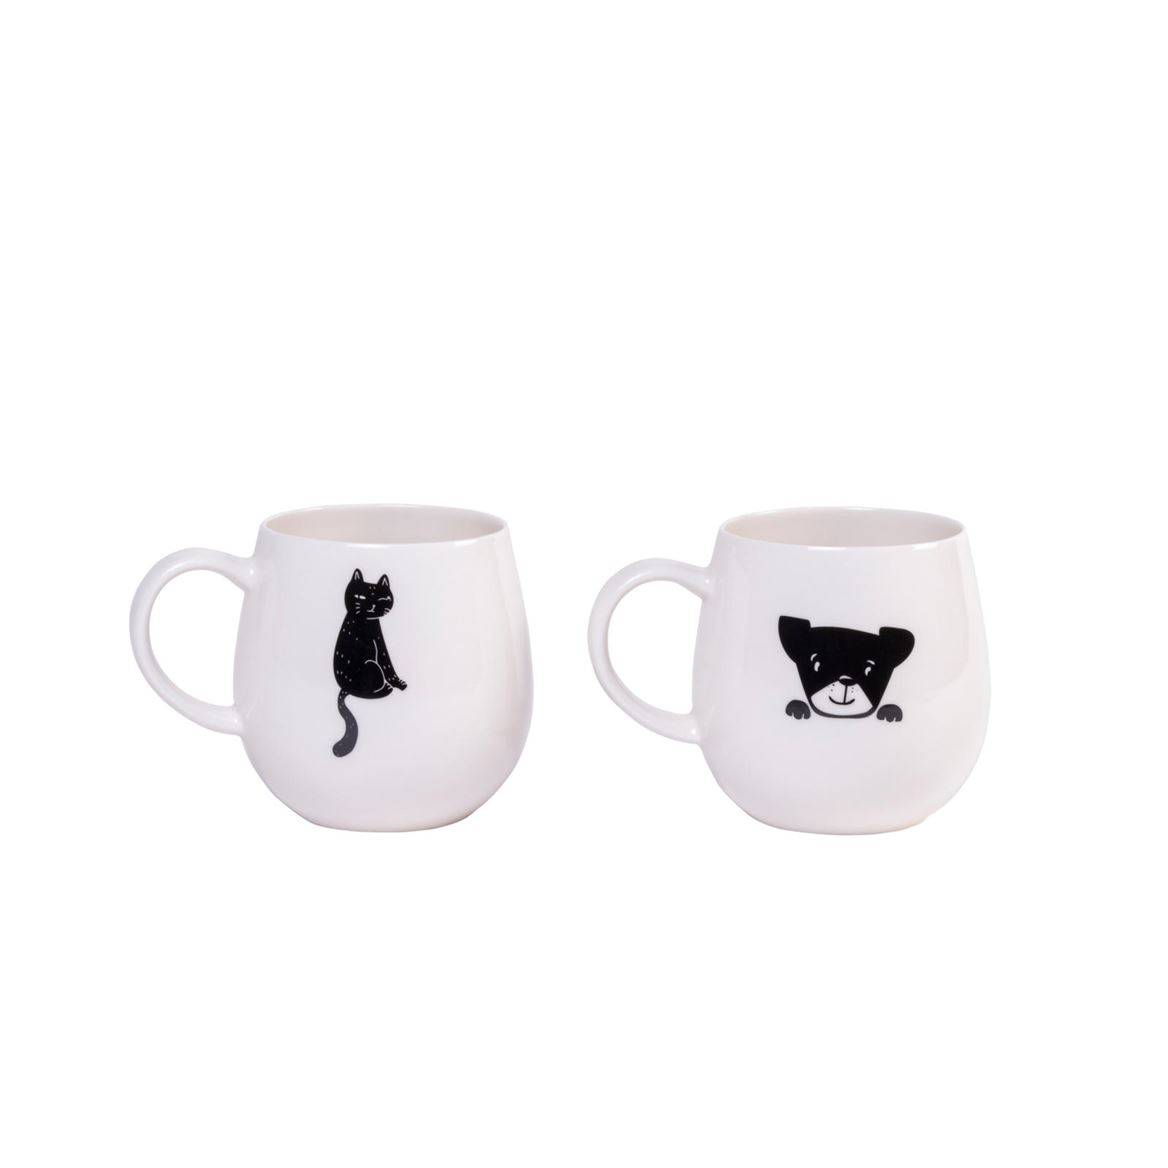 CAT AND DOG  Mug 2 disegni bianco H 10,5 cm; Ø 8,5 cm_cat-and-dog--mug-2-disegni-bianco-h-10,5-cm;-ø-8,5-cm